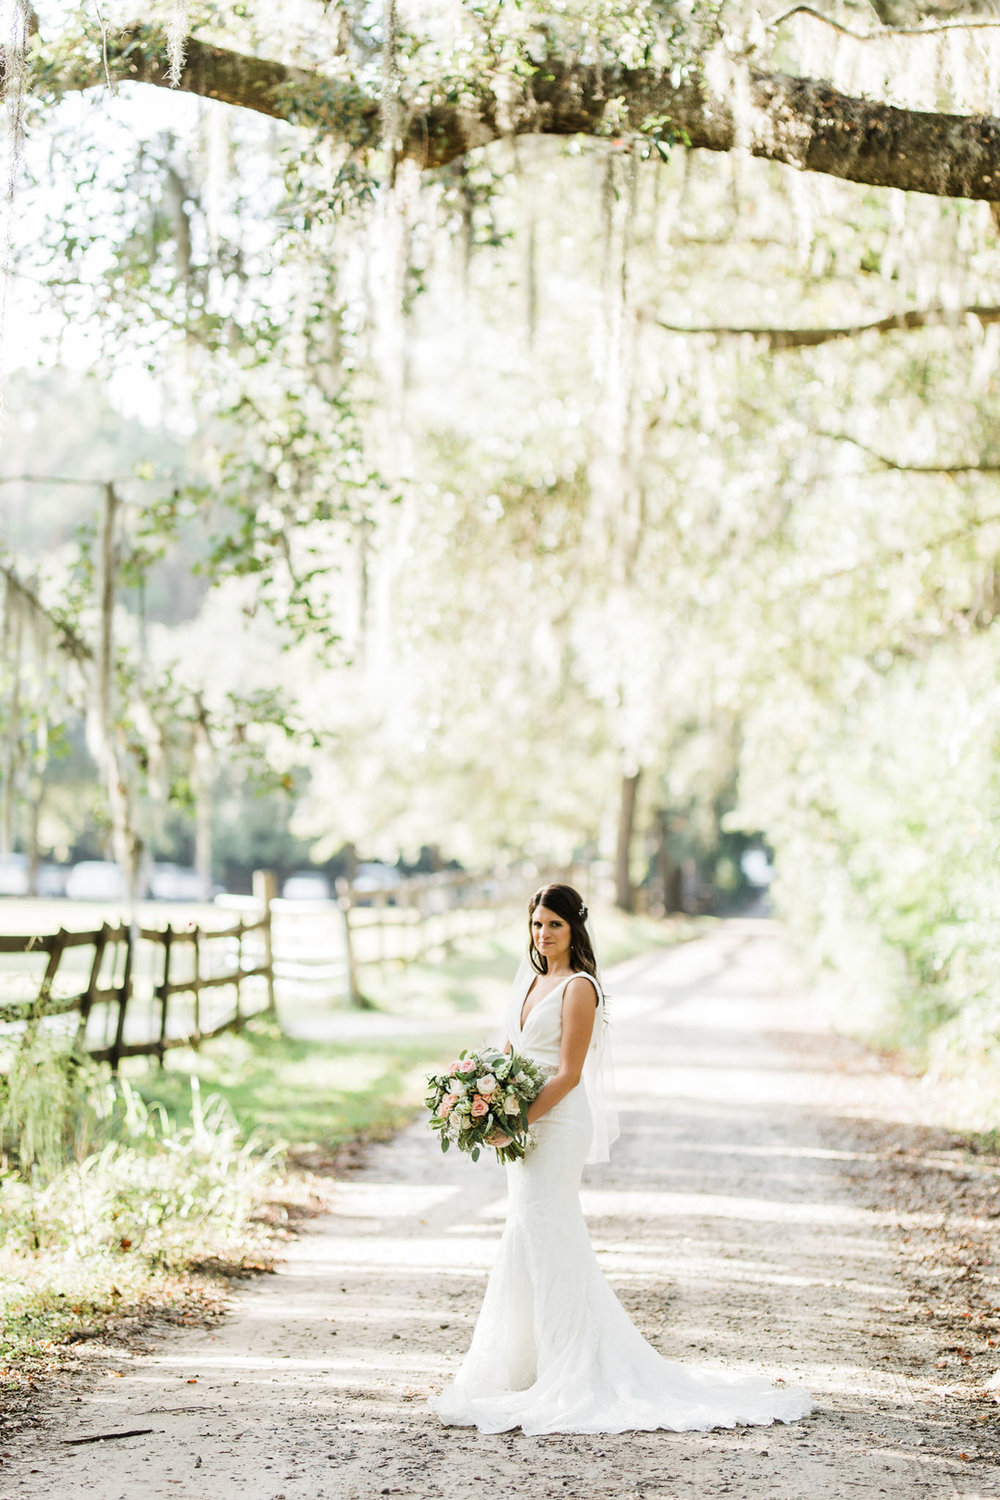 old-wide-awake-plantation-wedding-5.jpg